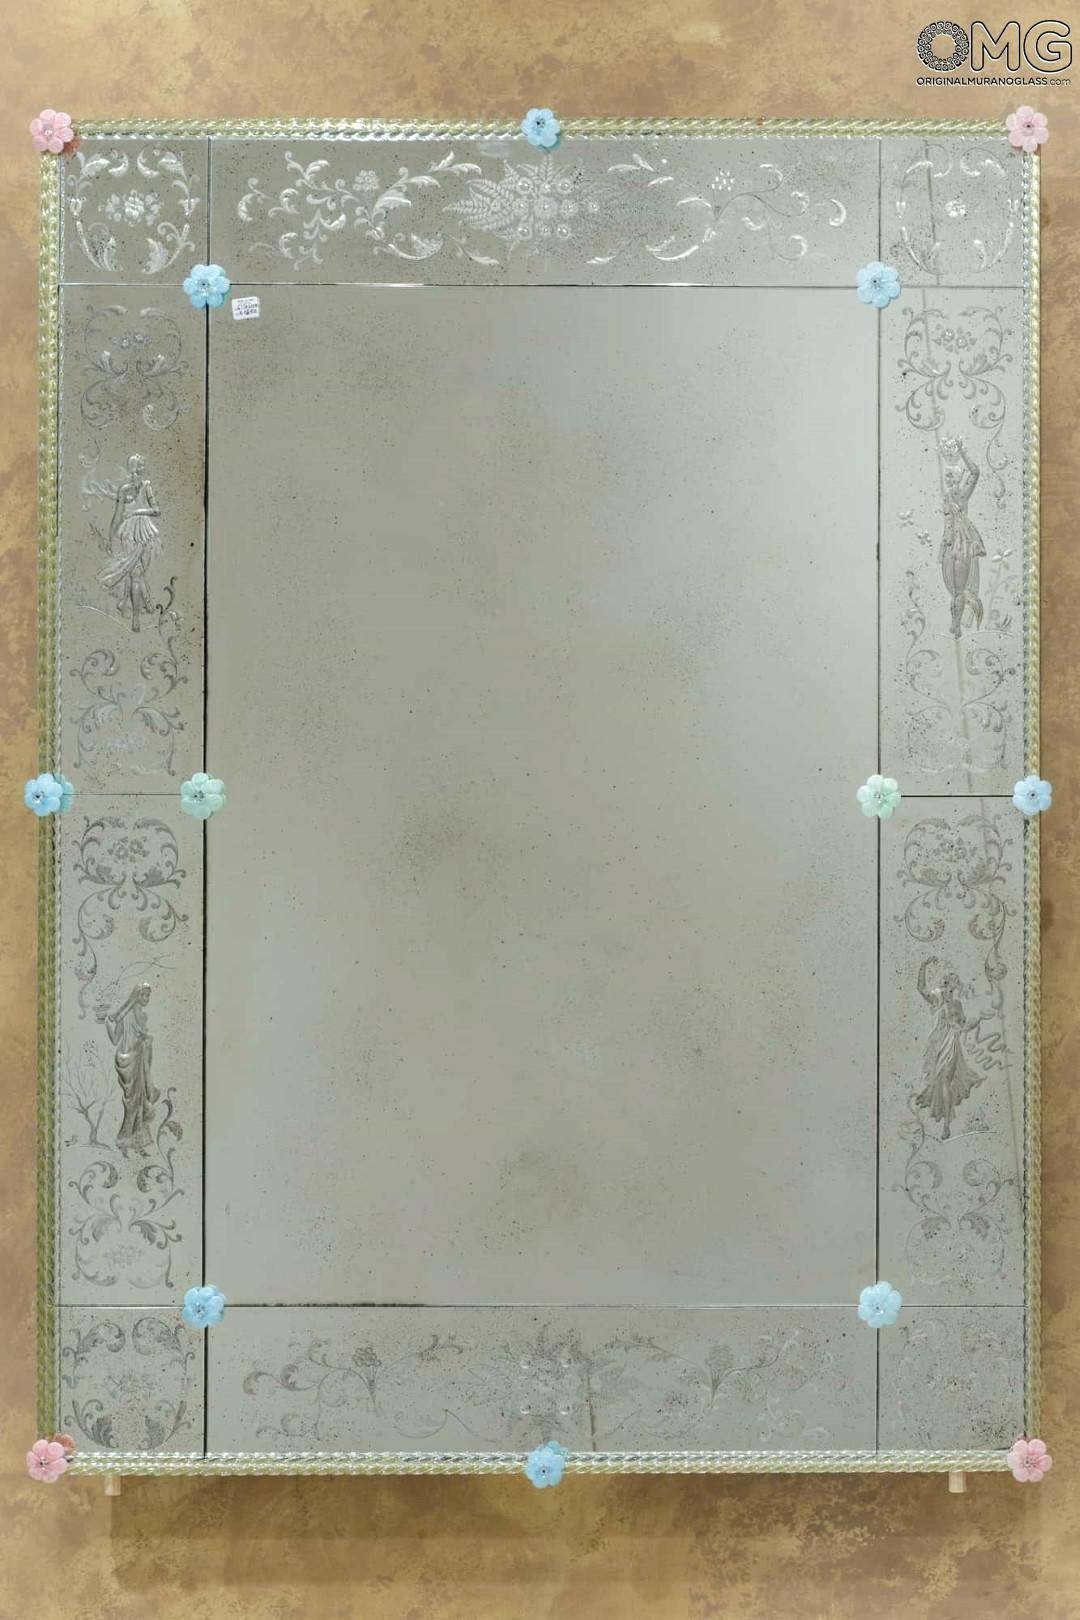 Four Seasons Wall Venetian Mirror Engraved With Murano Glassextra with Venetian Bevelled Mirrors (Image 4 of 25)